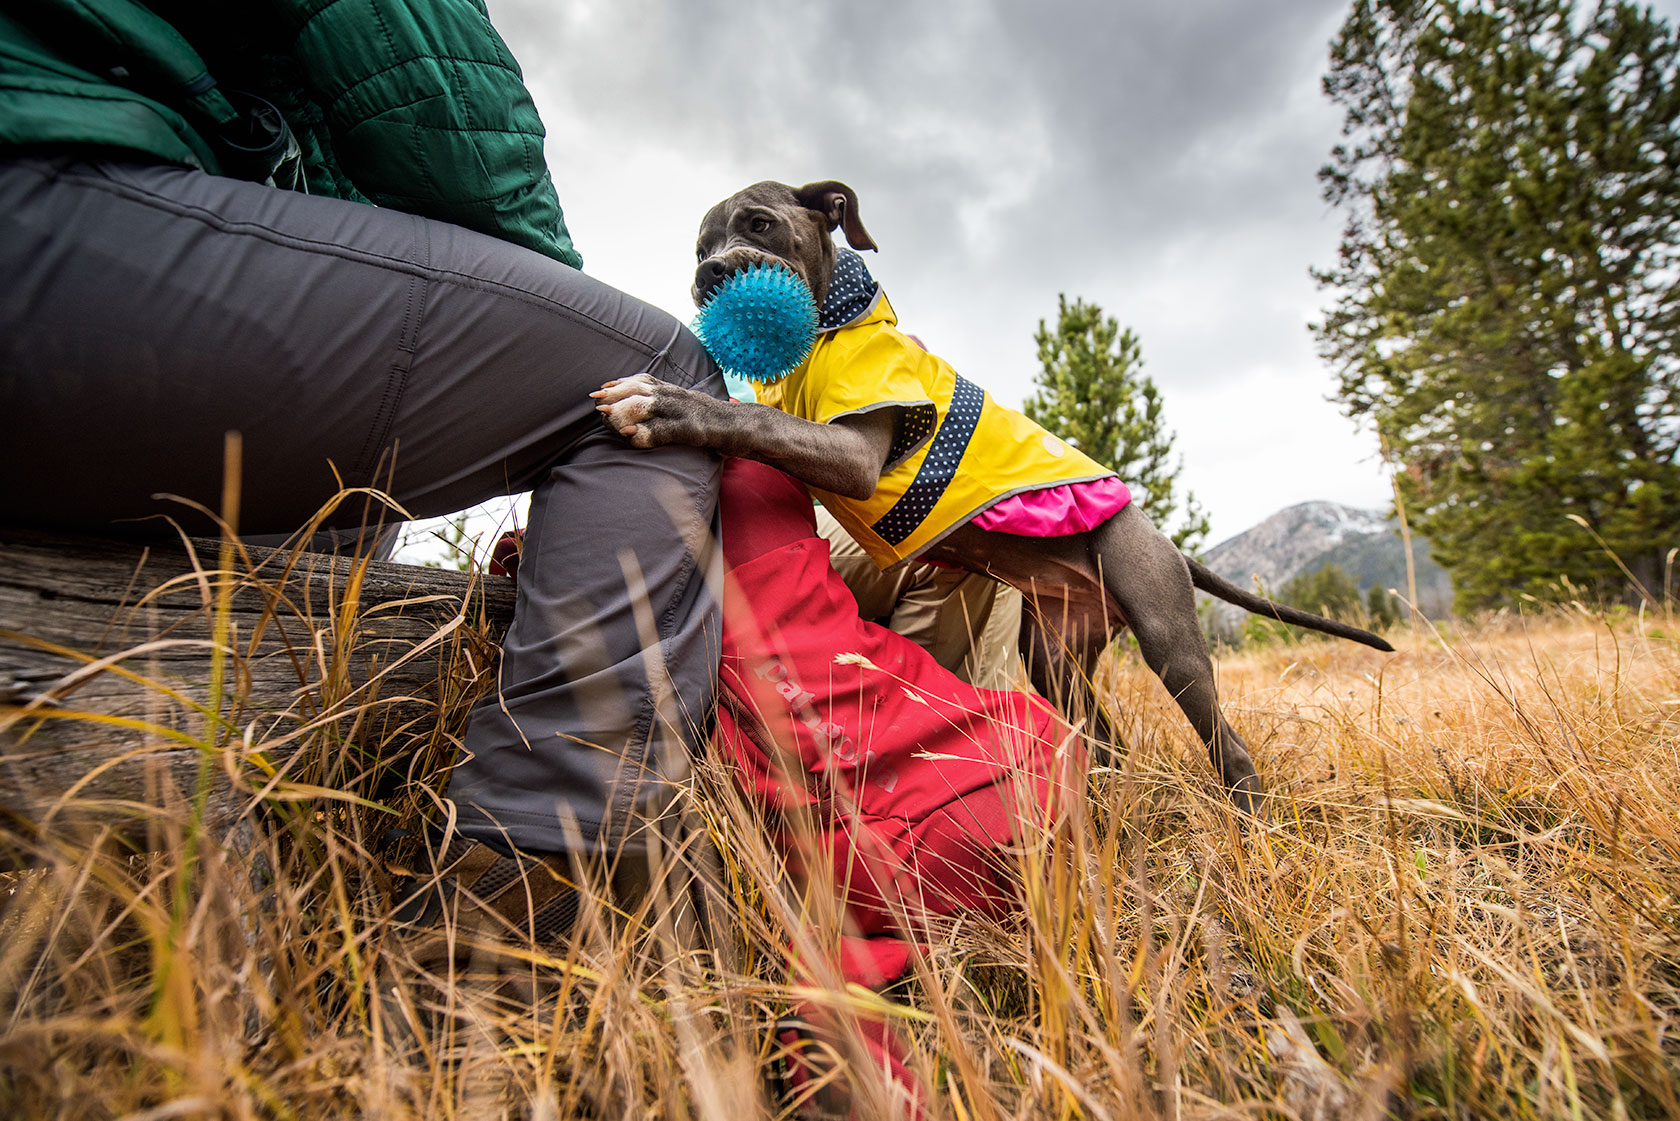 austin-trigg-patagonia-sawtooth-hiking-stanley-lake-dog-play-ball-advenure-wilderness-forest-idaho-outside-lifestyle-day-fall-weather-mountains.jpg